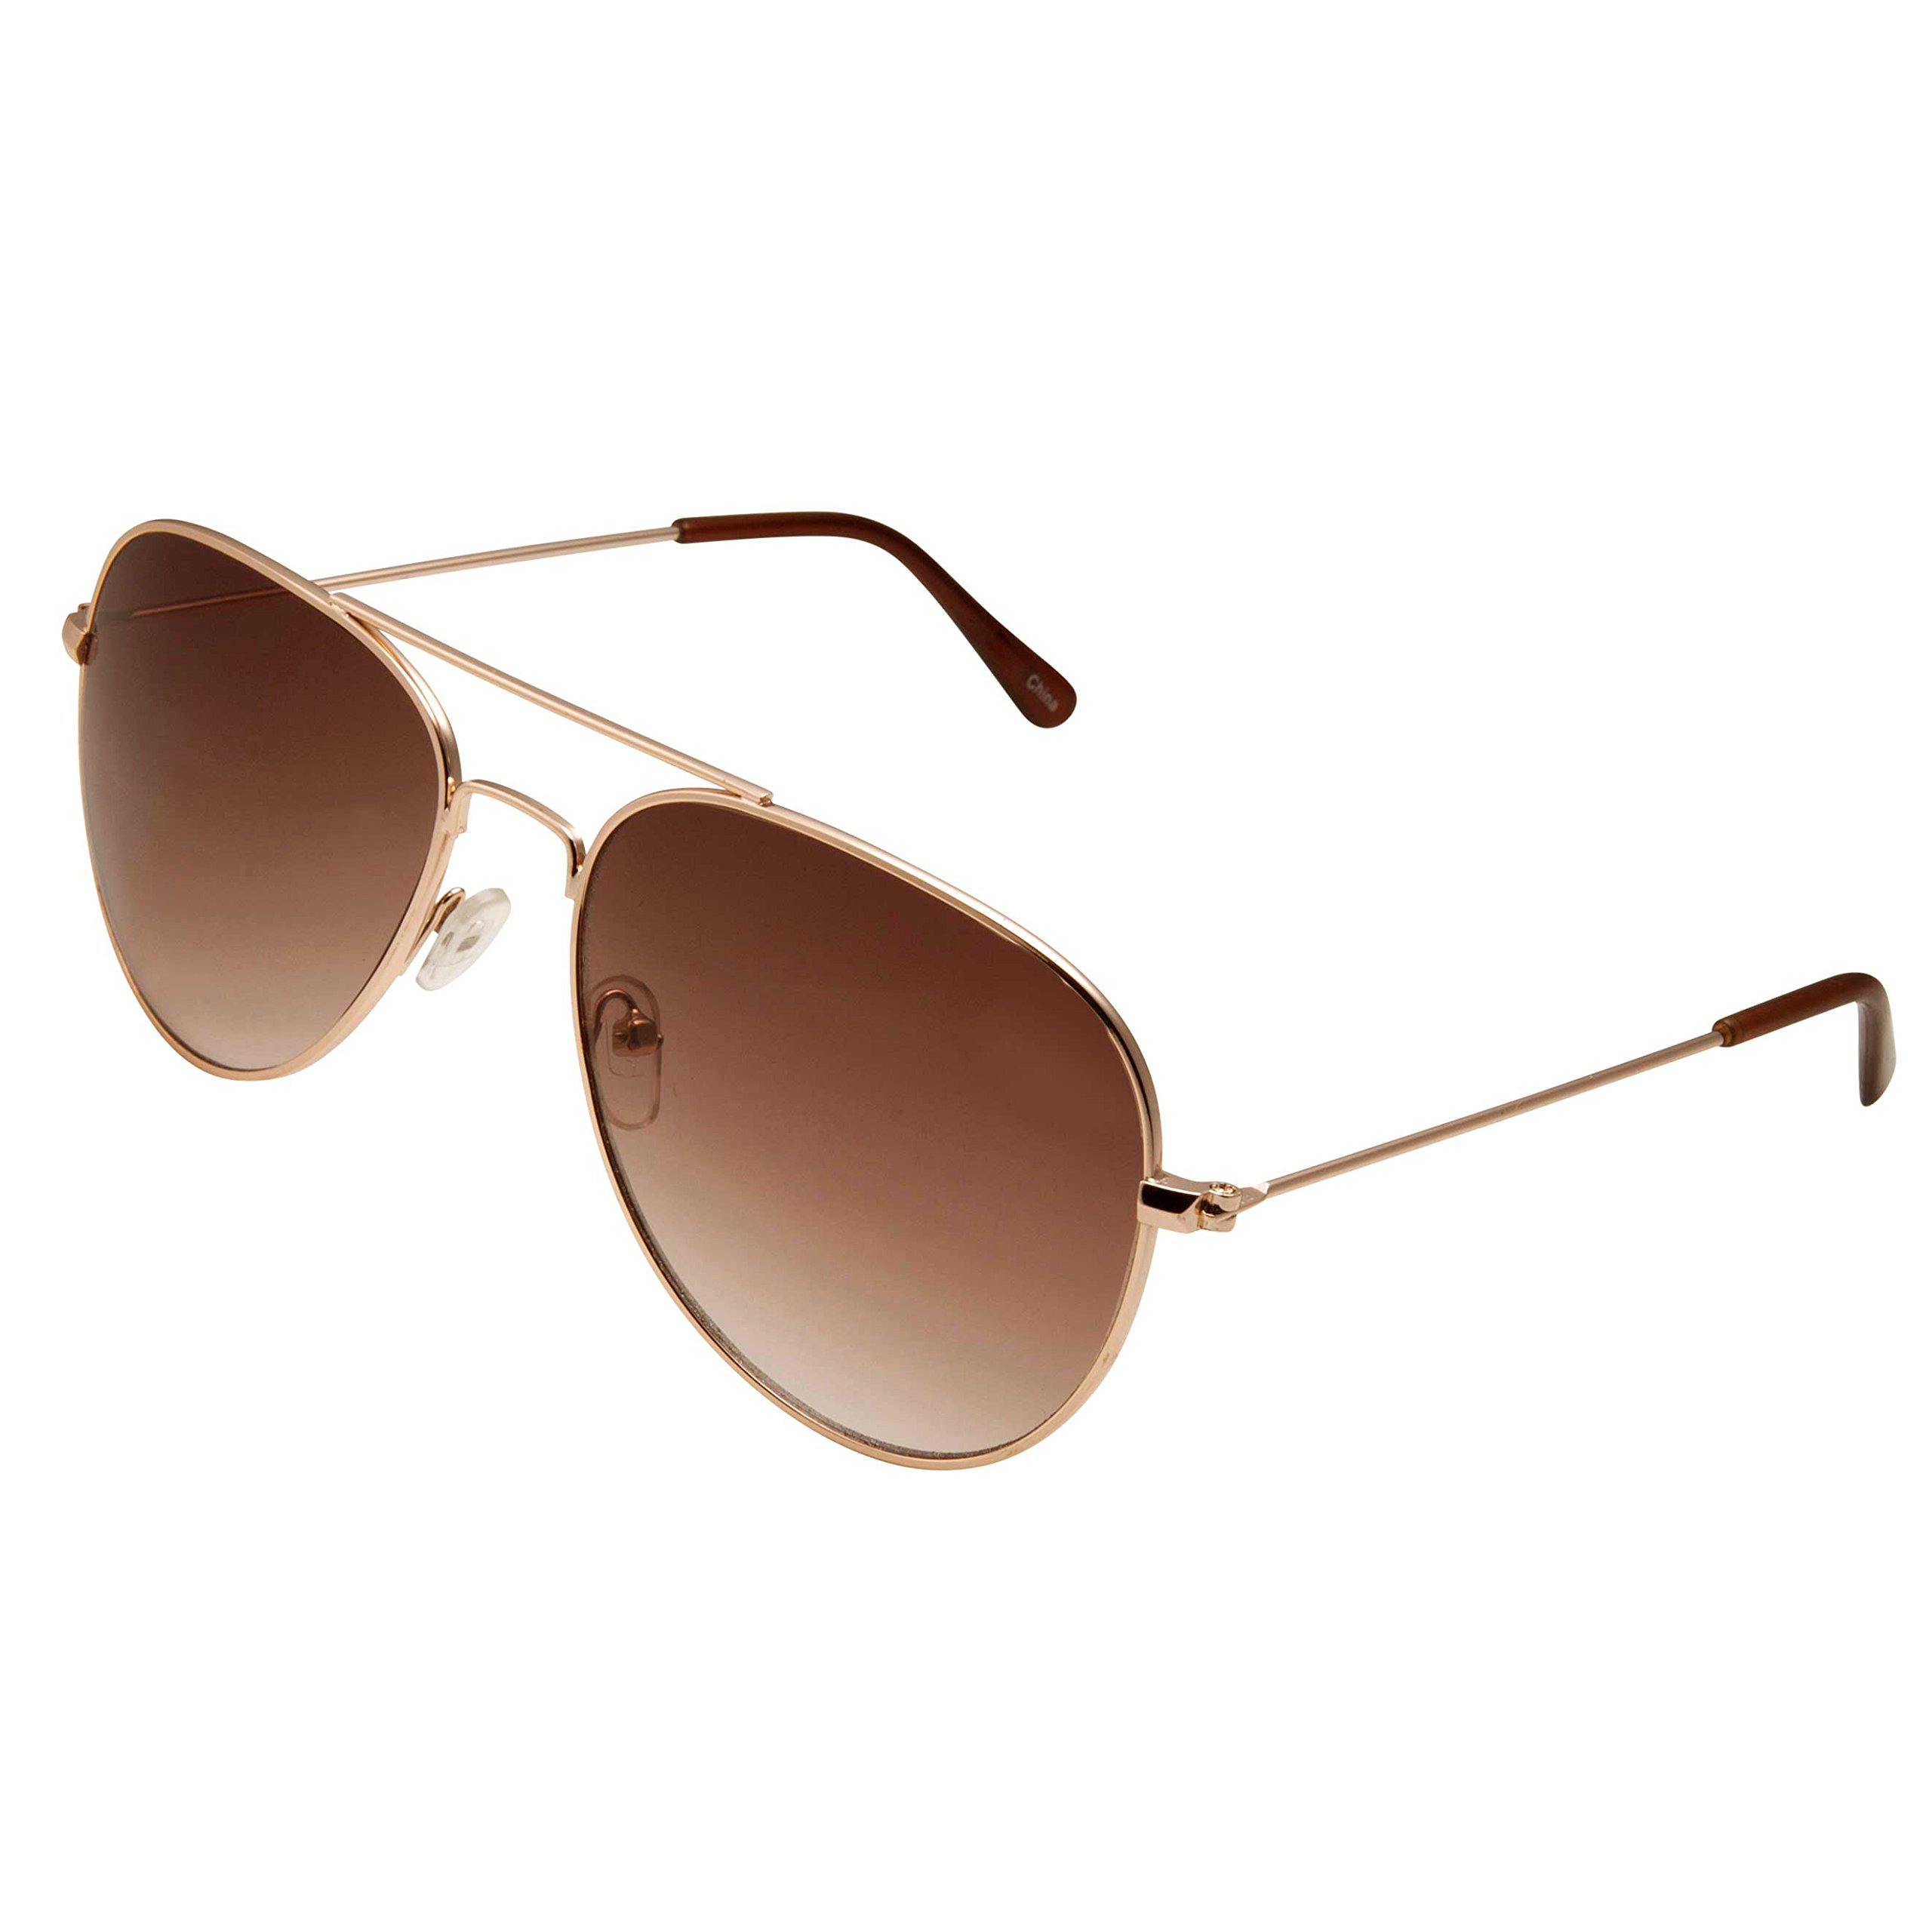 4d5cce9d1c4f8 Get Quotations · grinderPUNCH Classic Aviator Sunglasses Normal Fit in Gold  Frame with Brown Lens